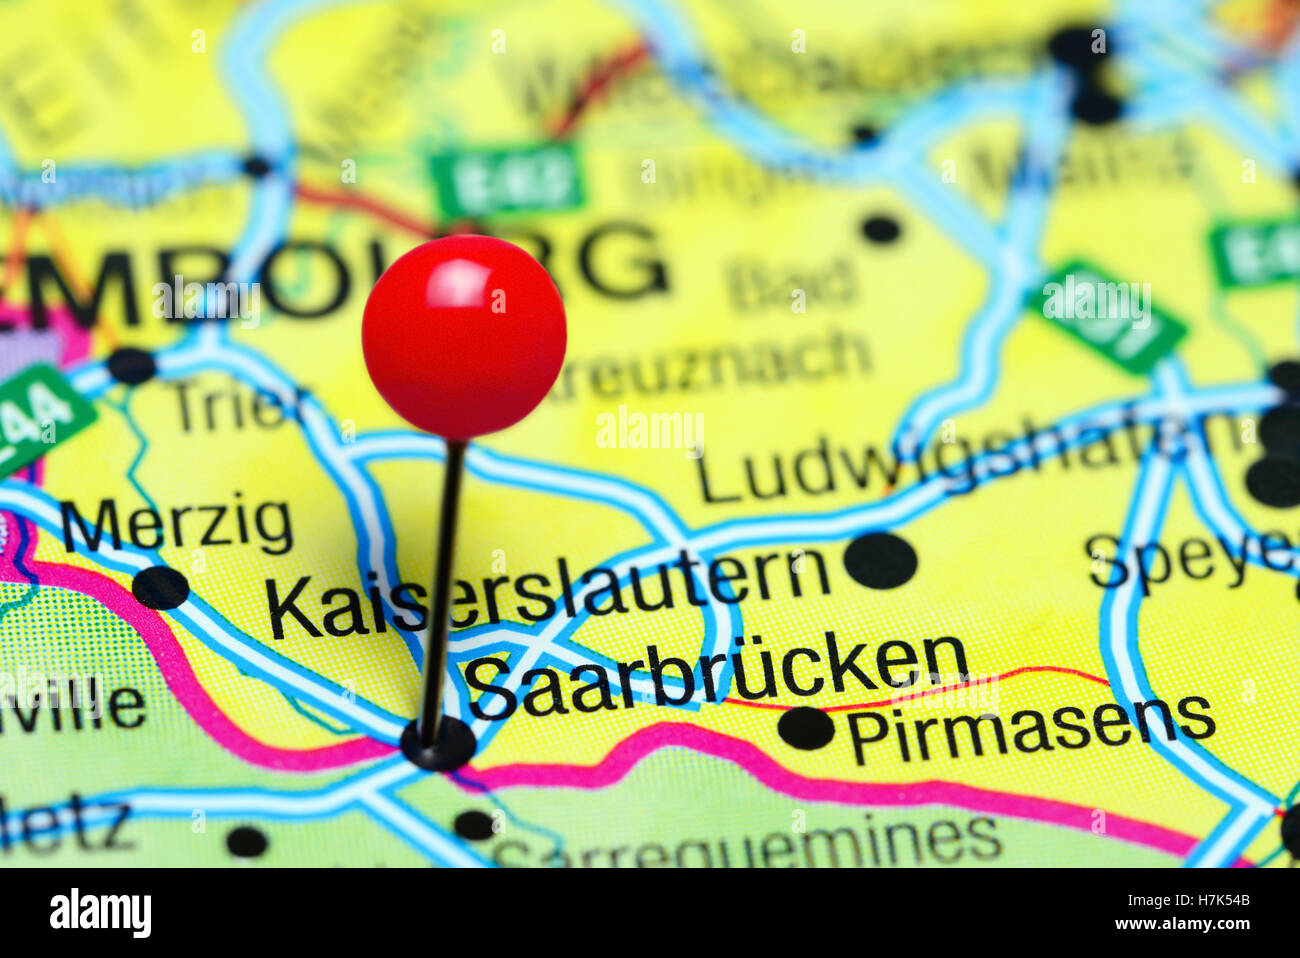 Saarbrucken pinned on a map of Germany Stock Photo Royalty Free